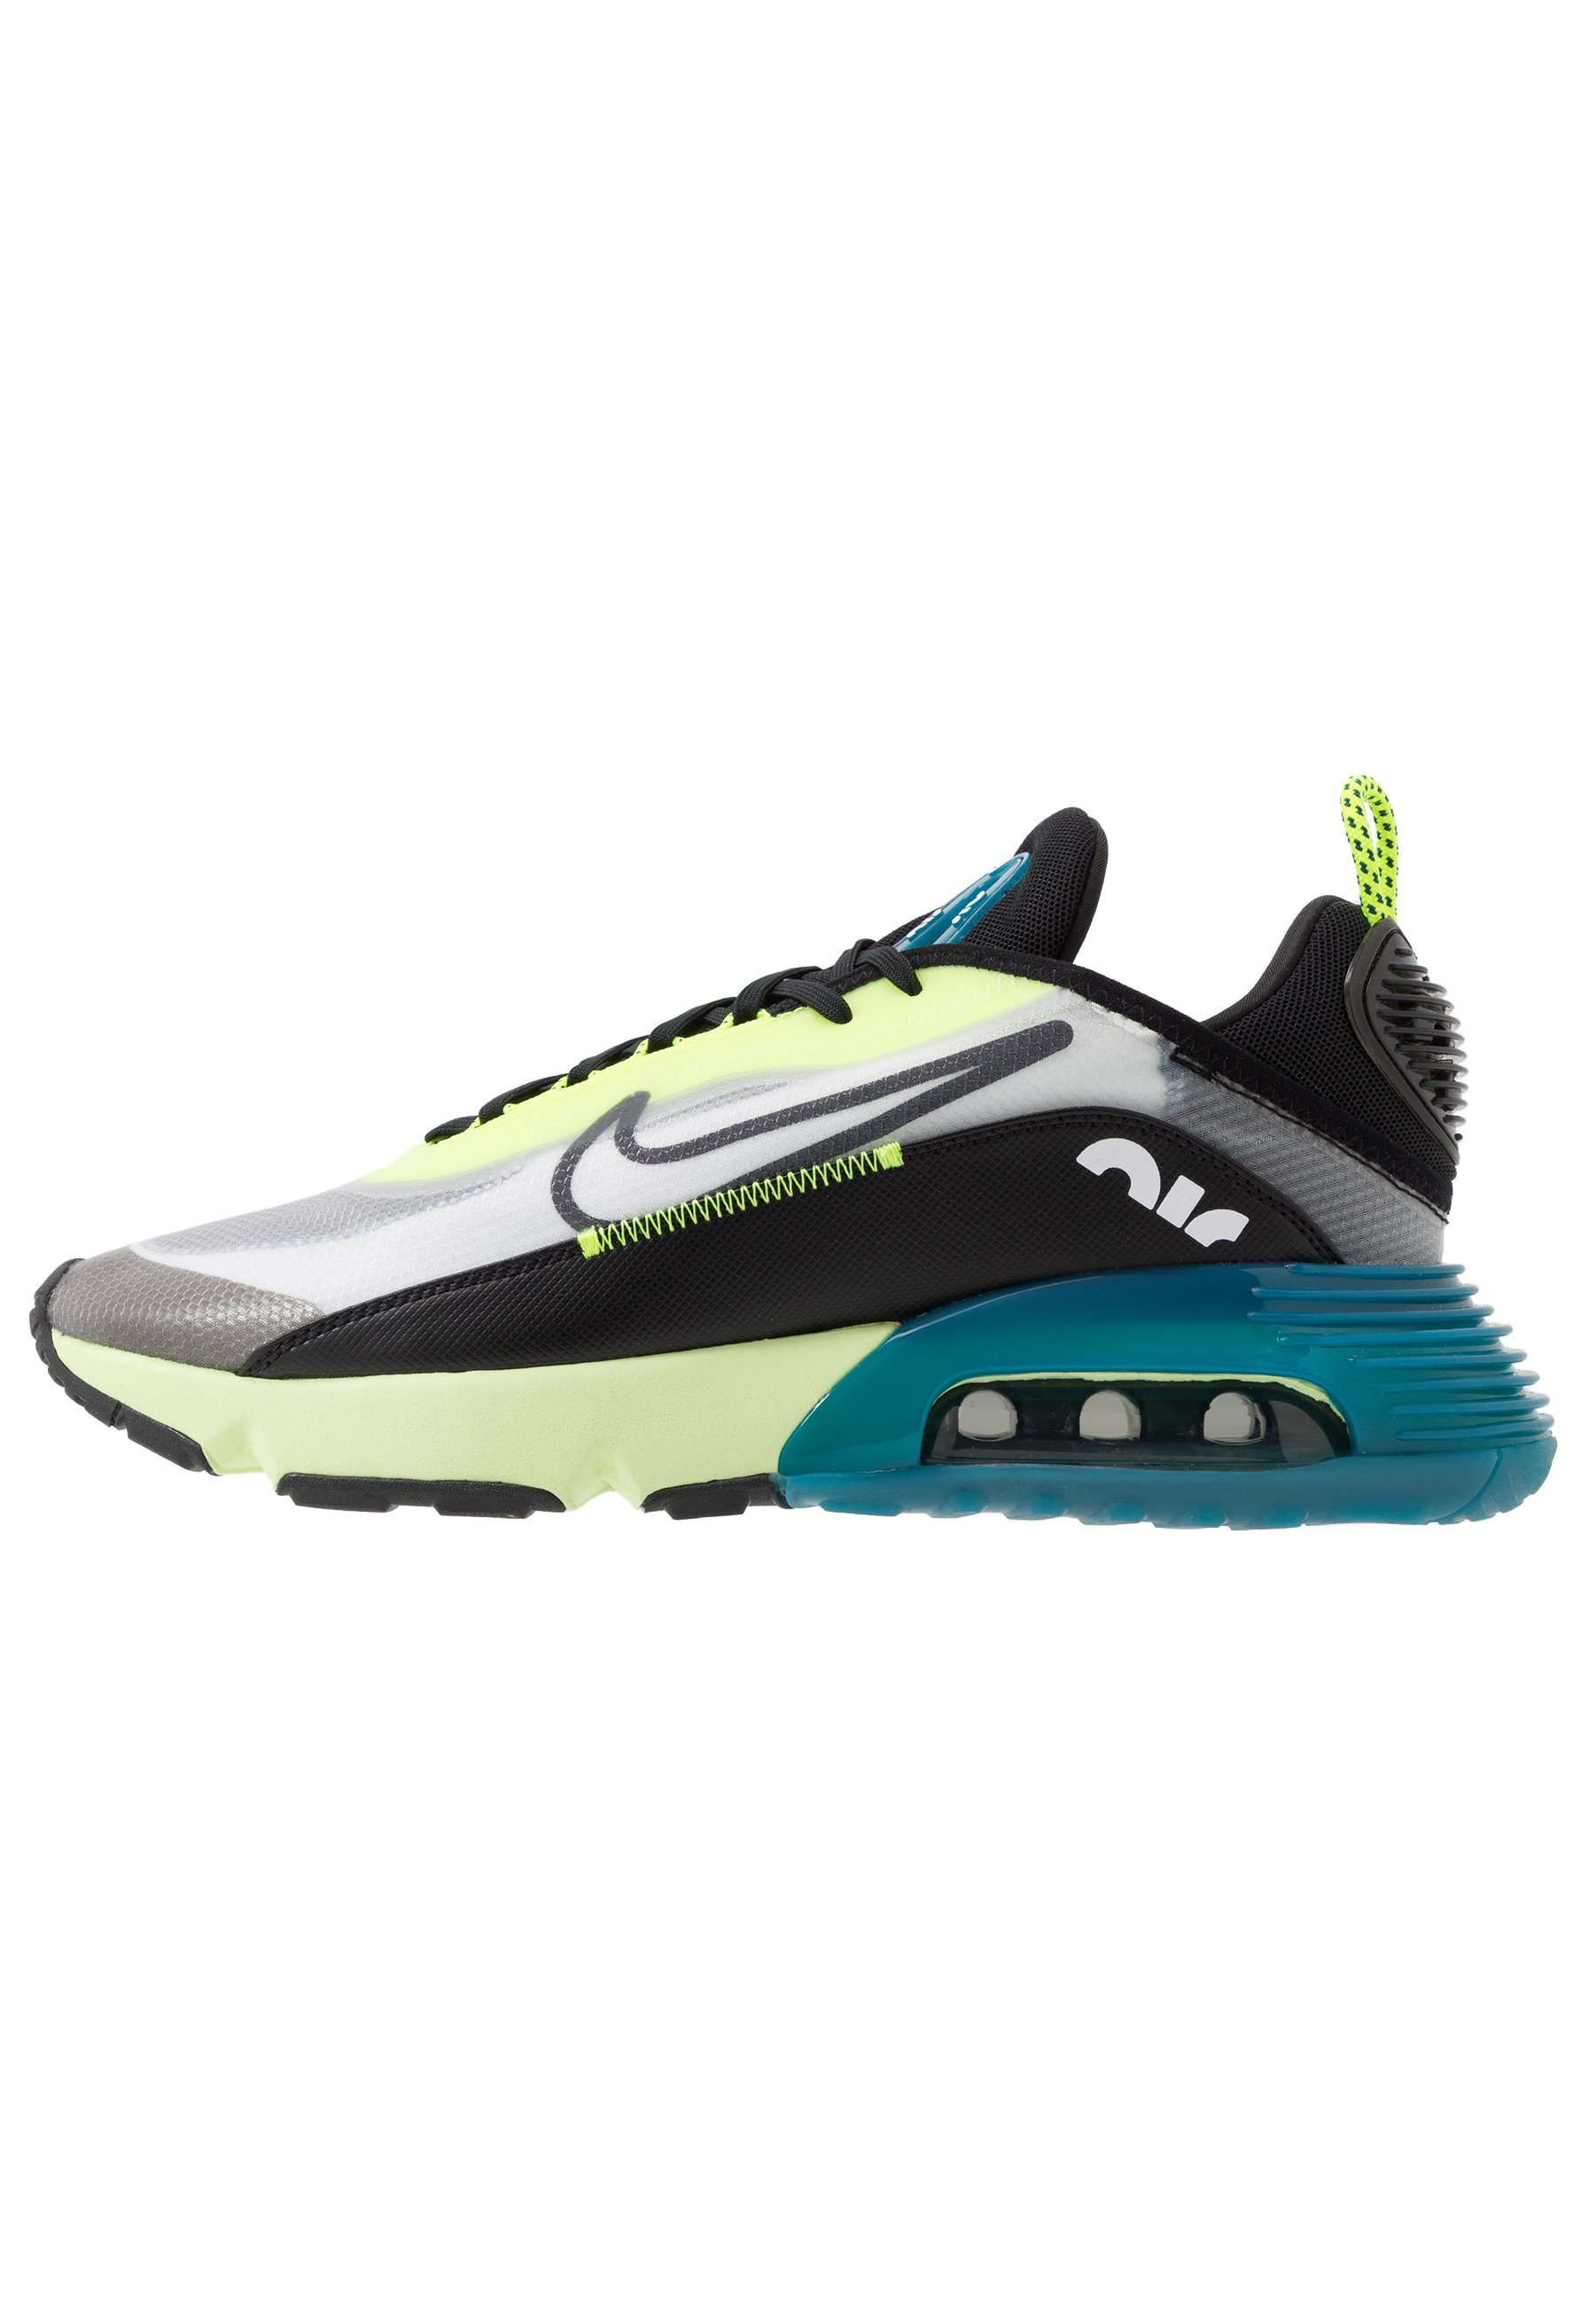 AIR MAX 2090 Baskets basses whiteblackvoltblue forcebarely volt